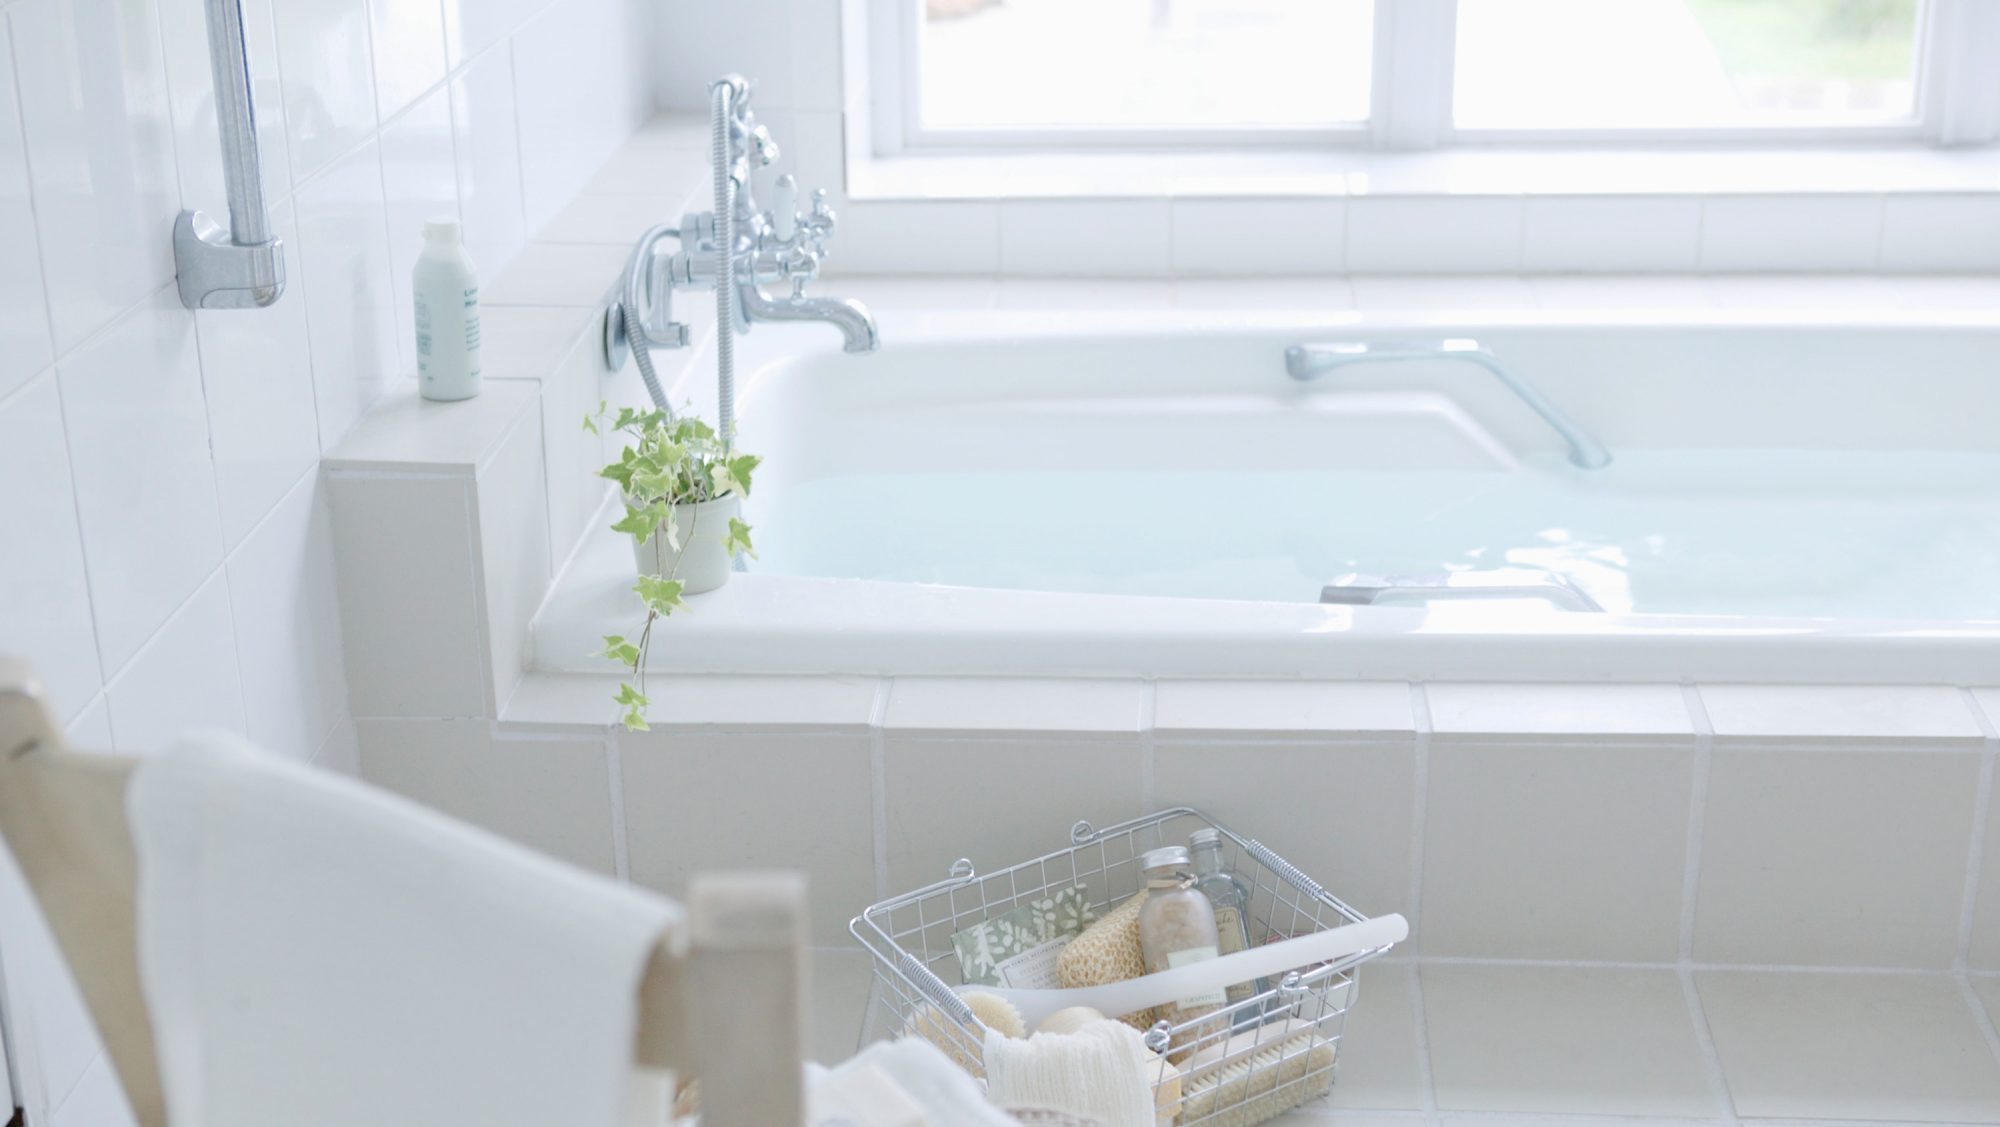 Bathtub from Getty Images